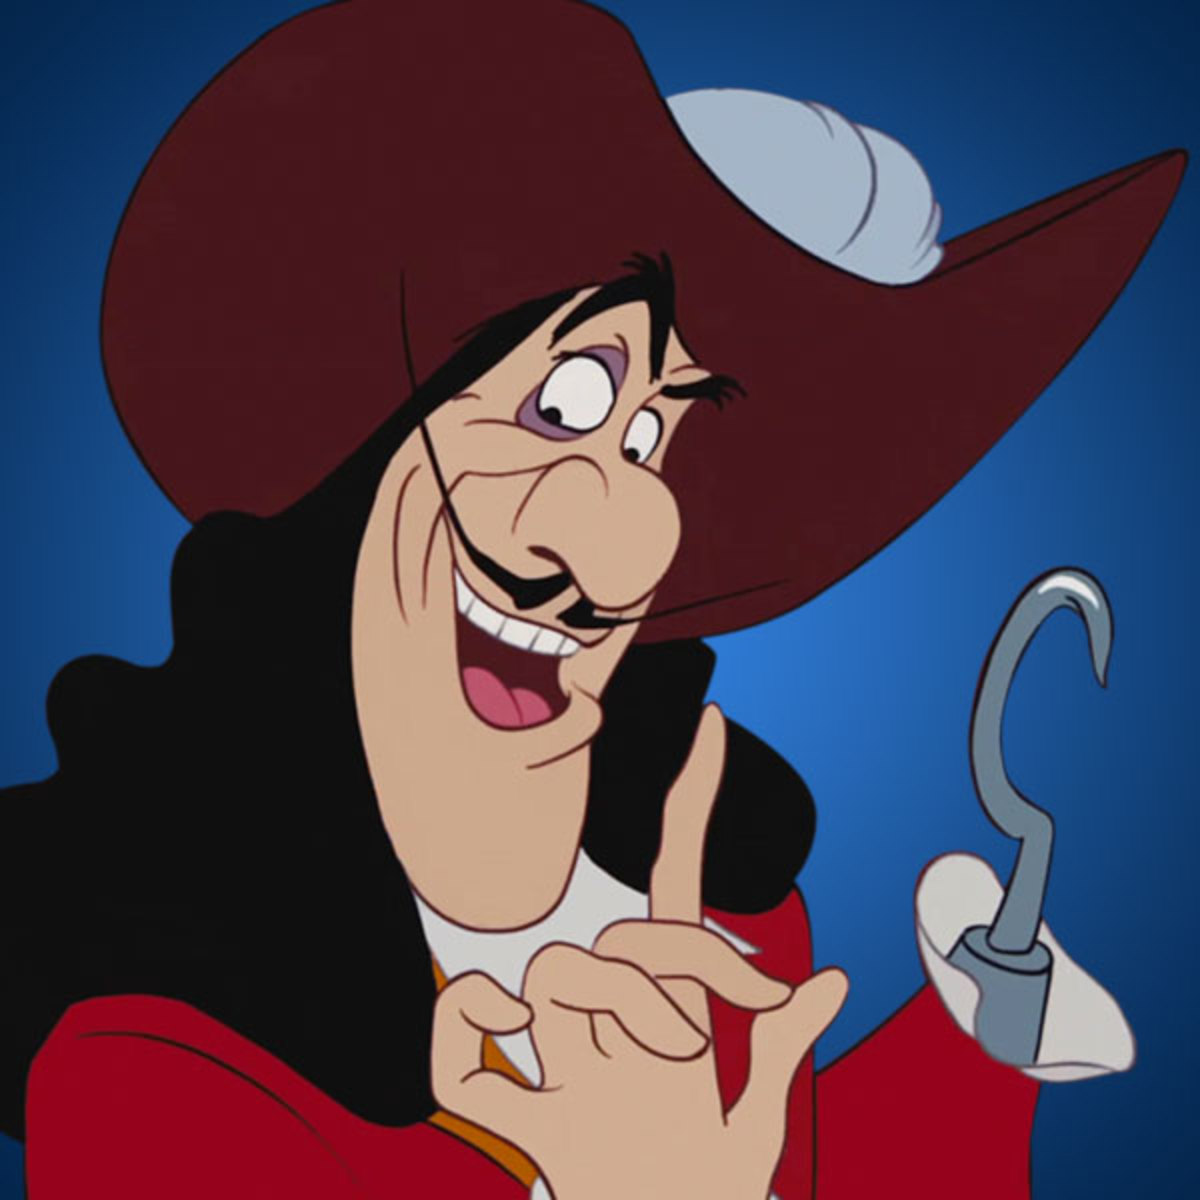 Captain Hook in Peter Pan